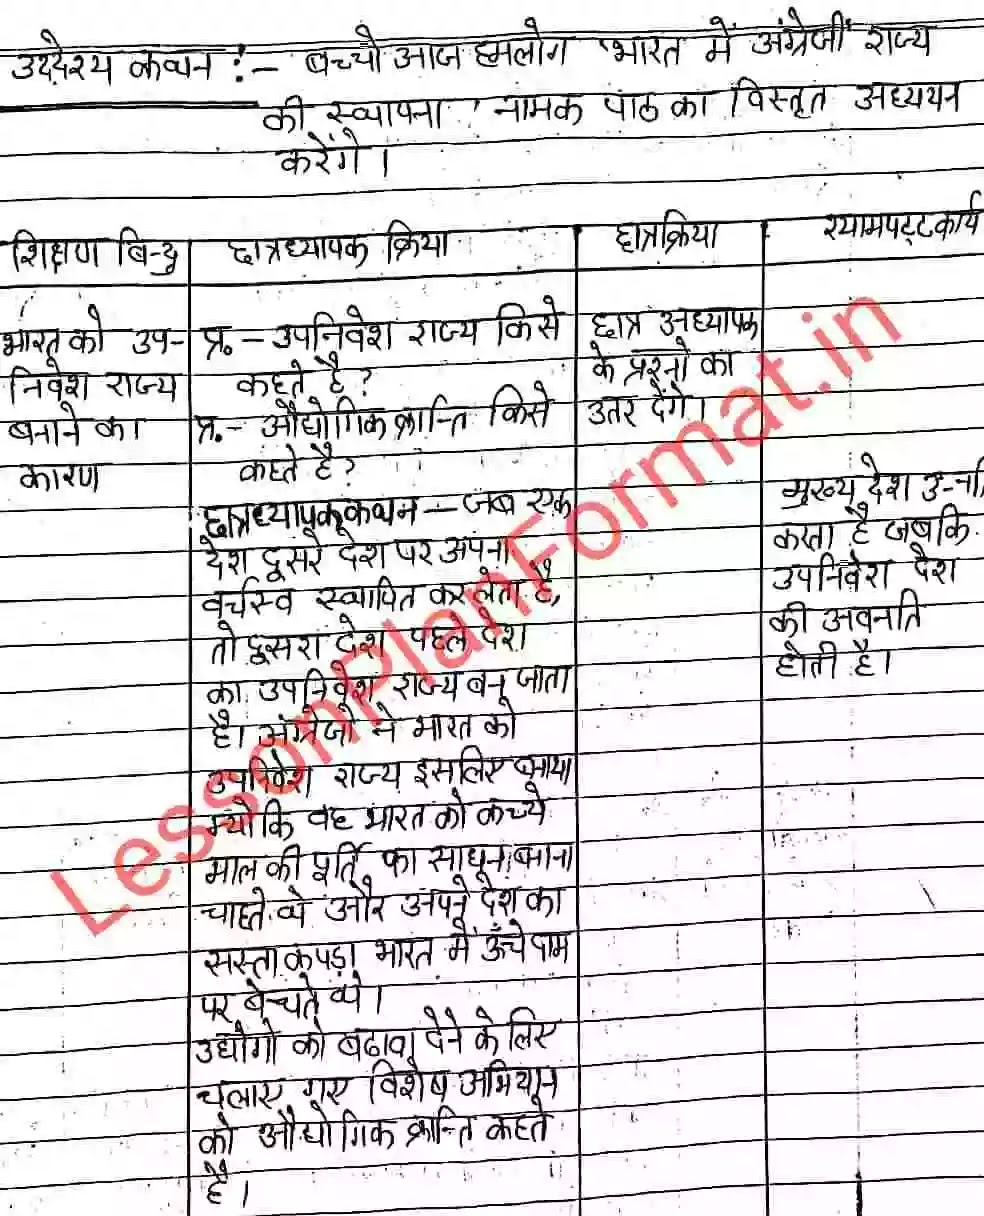 History Lesson Plan for B.ed in Hindi